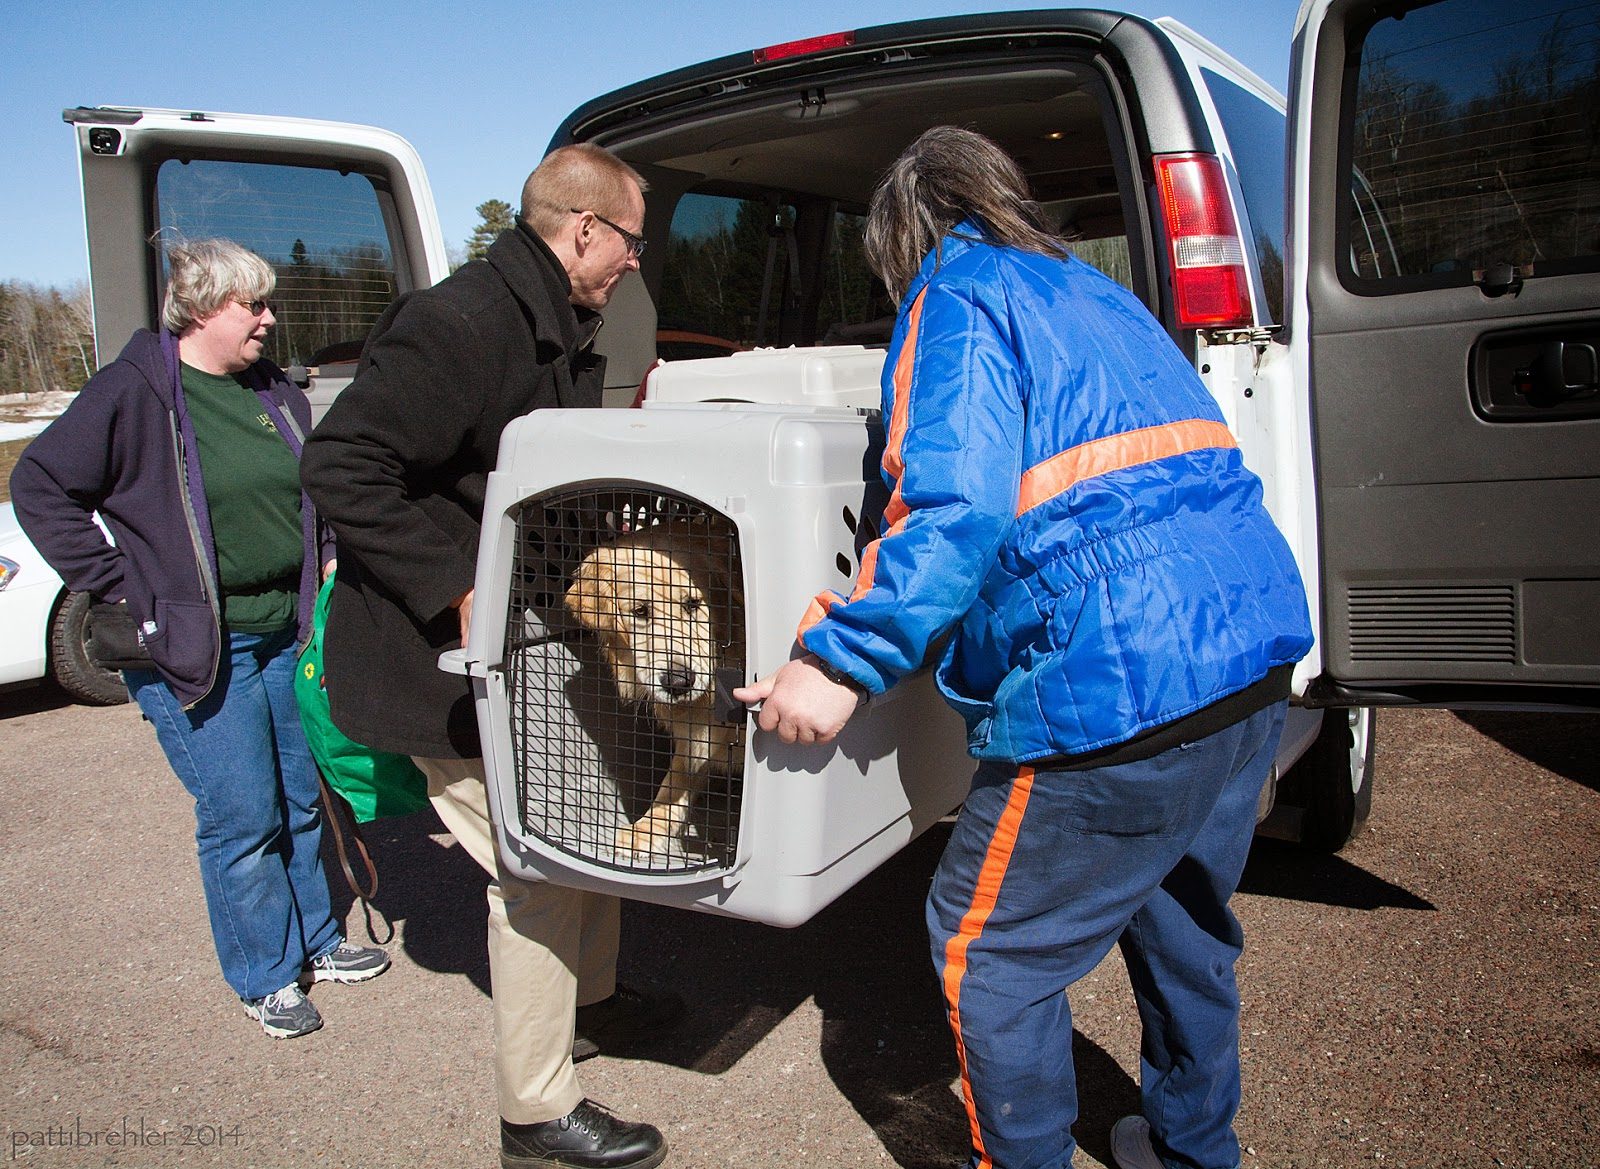 A golden retriever is looking out from inside of a plastic airline dog crate as it is being lifted into the back of a white van by twon men. The man on the left is wearing glasses and a black pea coat and kahki pants. The man on the right is wearing a prison blue jacket and pants with orange stripes. A woman dressed in a blue hoodie, green t-shirt and blue jeans is standing to the left of the two men, holding the left van door open. It is a sunny day.